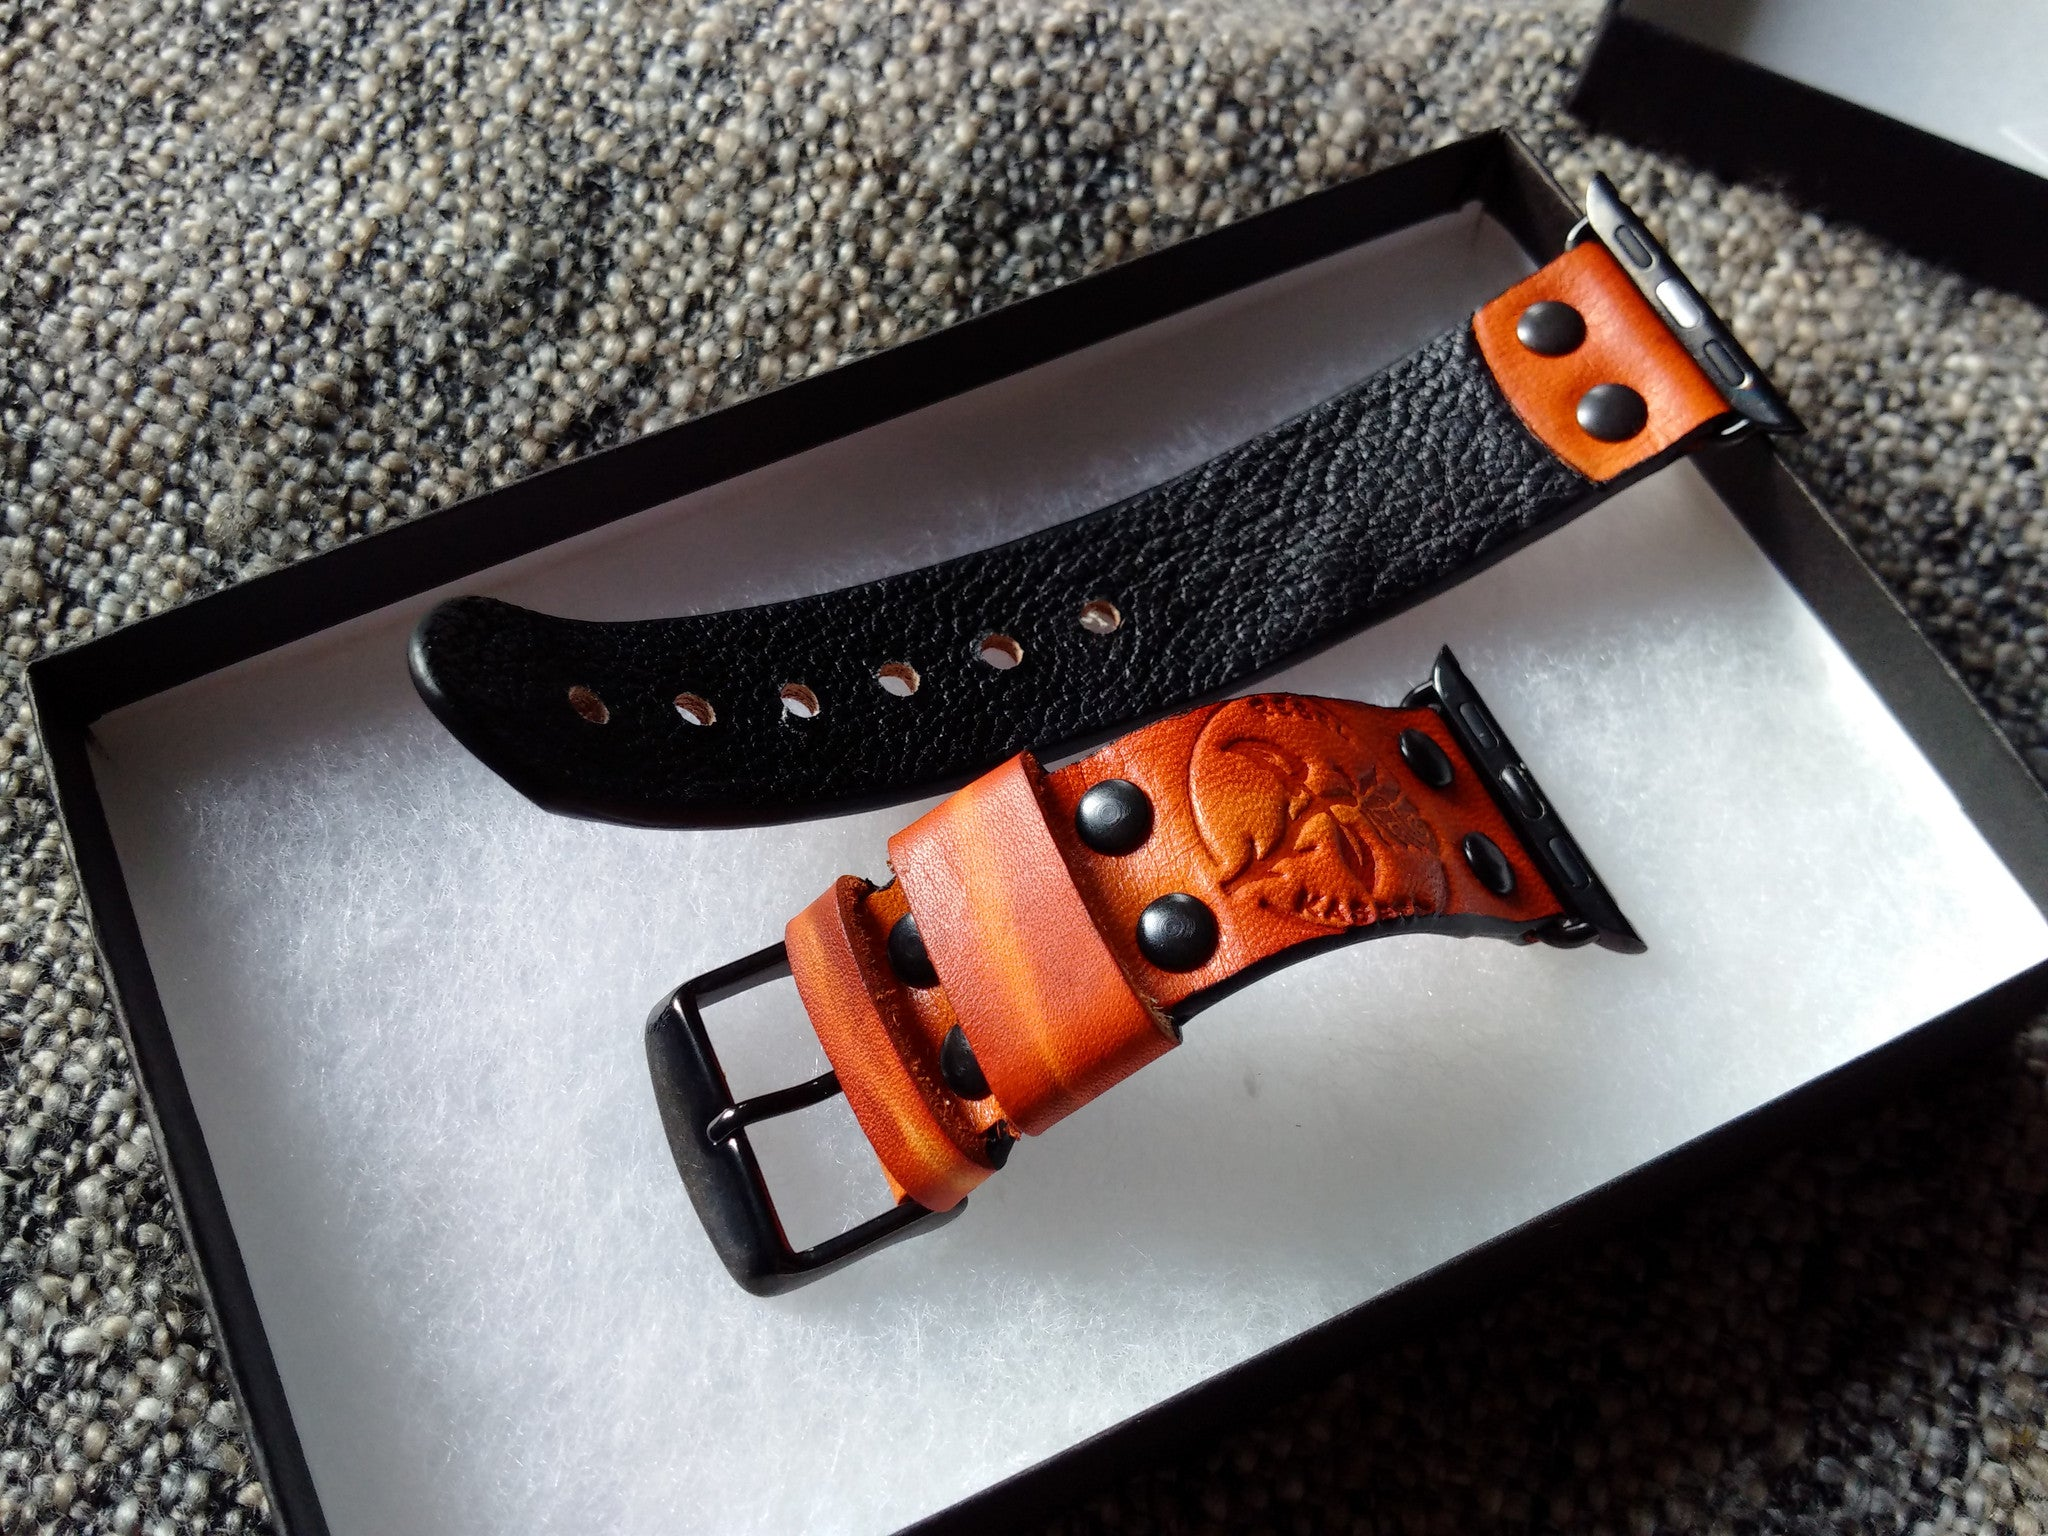 watchstrap for black apple watch, black adaptor,  皮革表带, kaseta leather